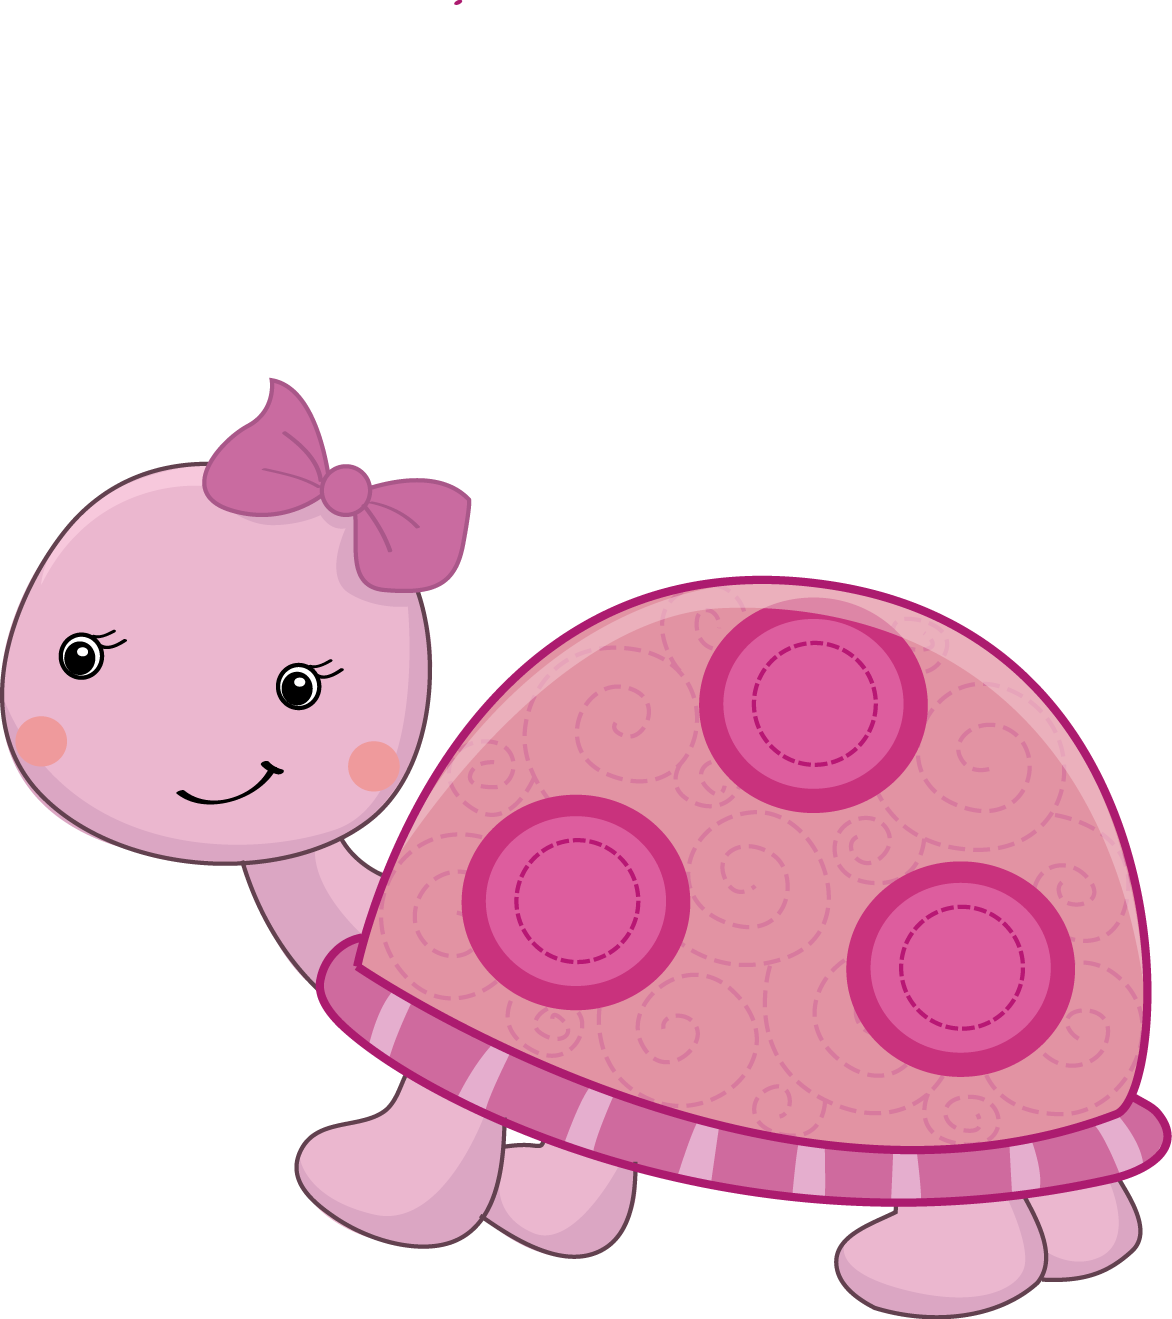 Girl clipart turtle. Pretty pink girly jungle